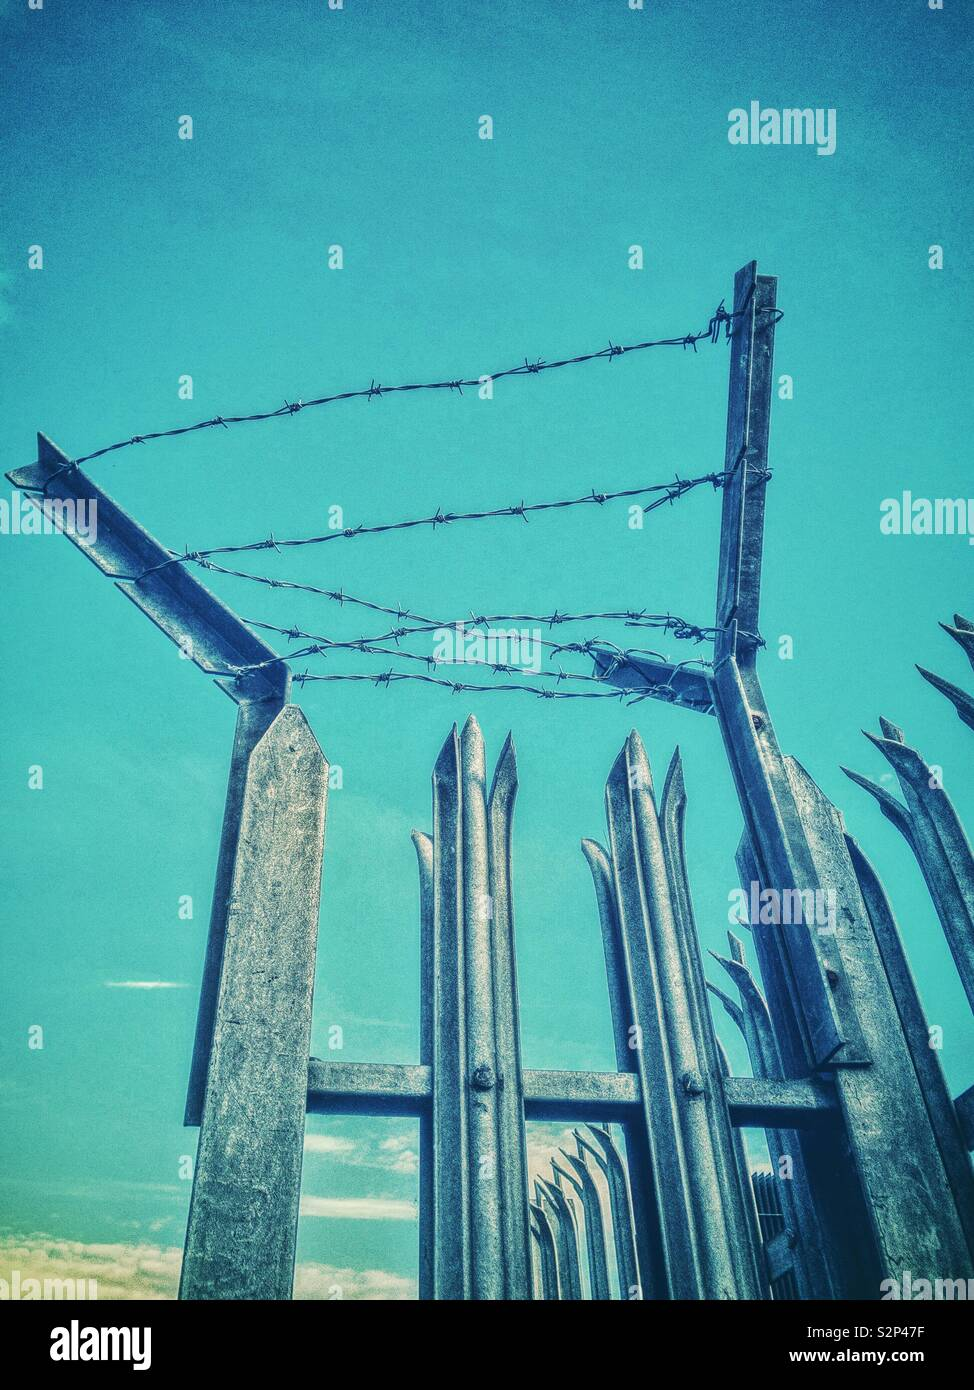 Metal security fence with barbed wire and spiked tops. - Stock Image